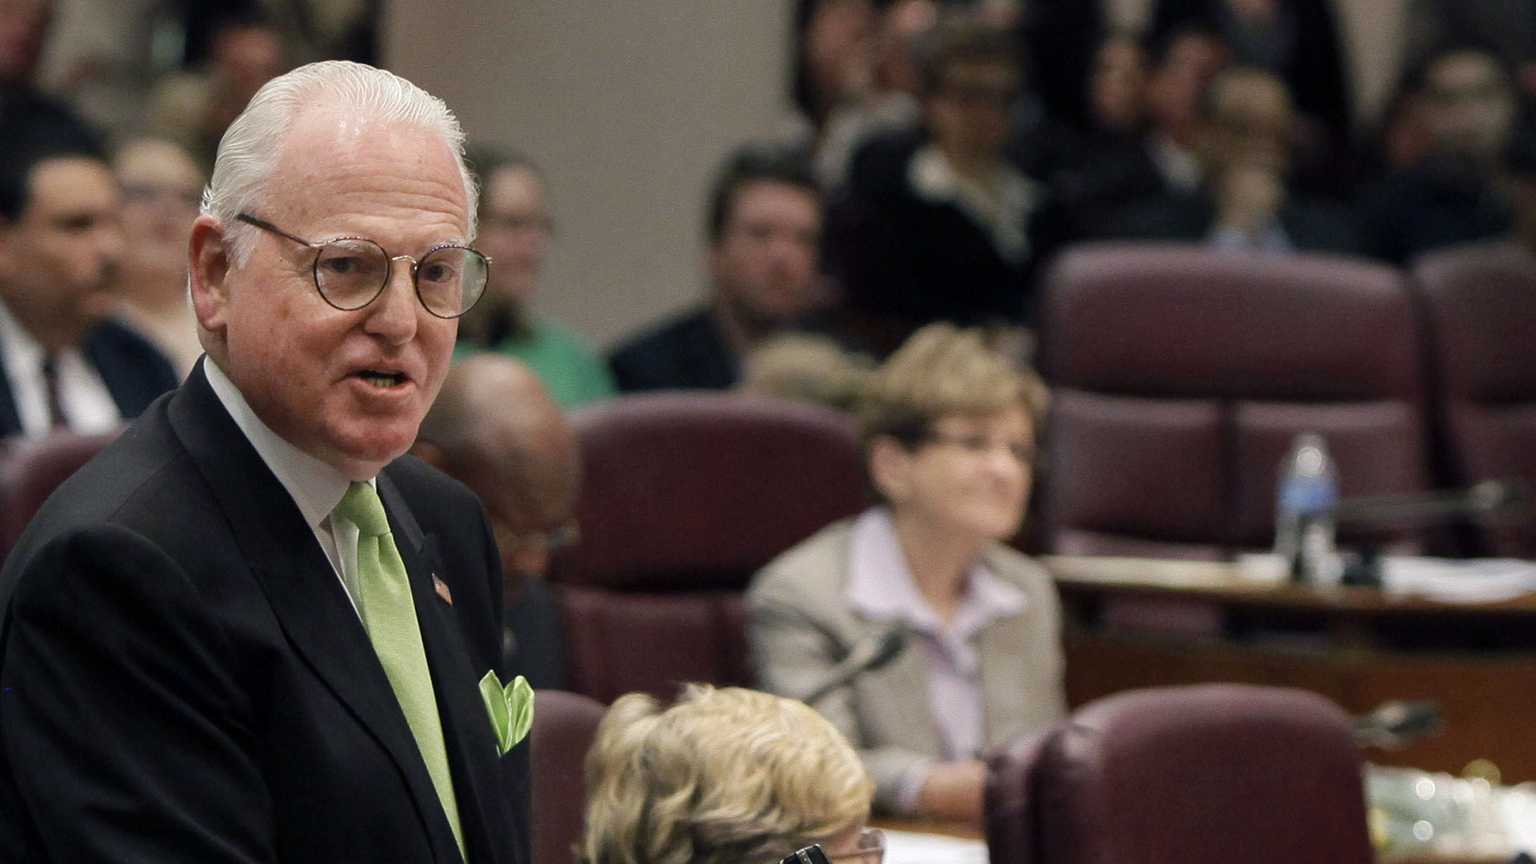 Political Journalists React to Powerful Alderman's Legal